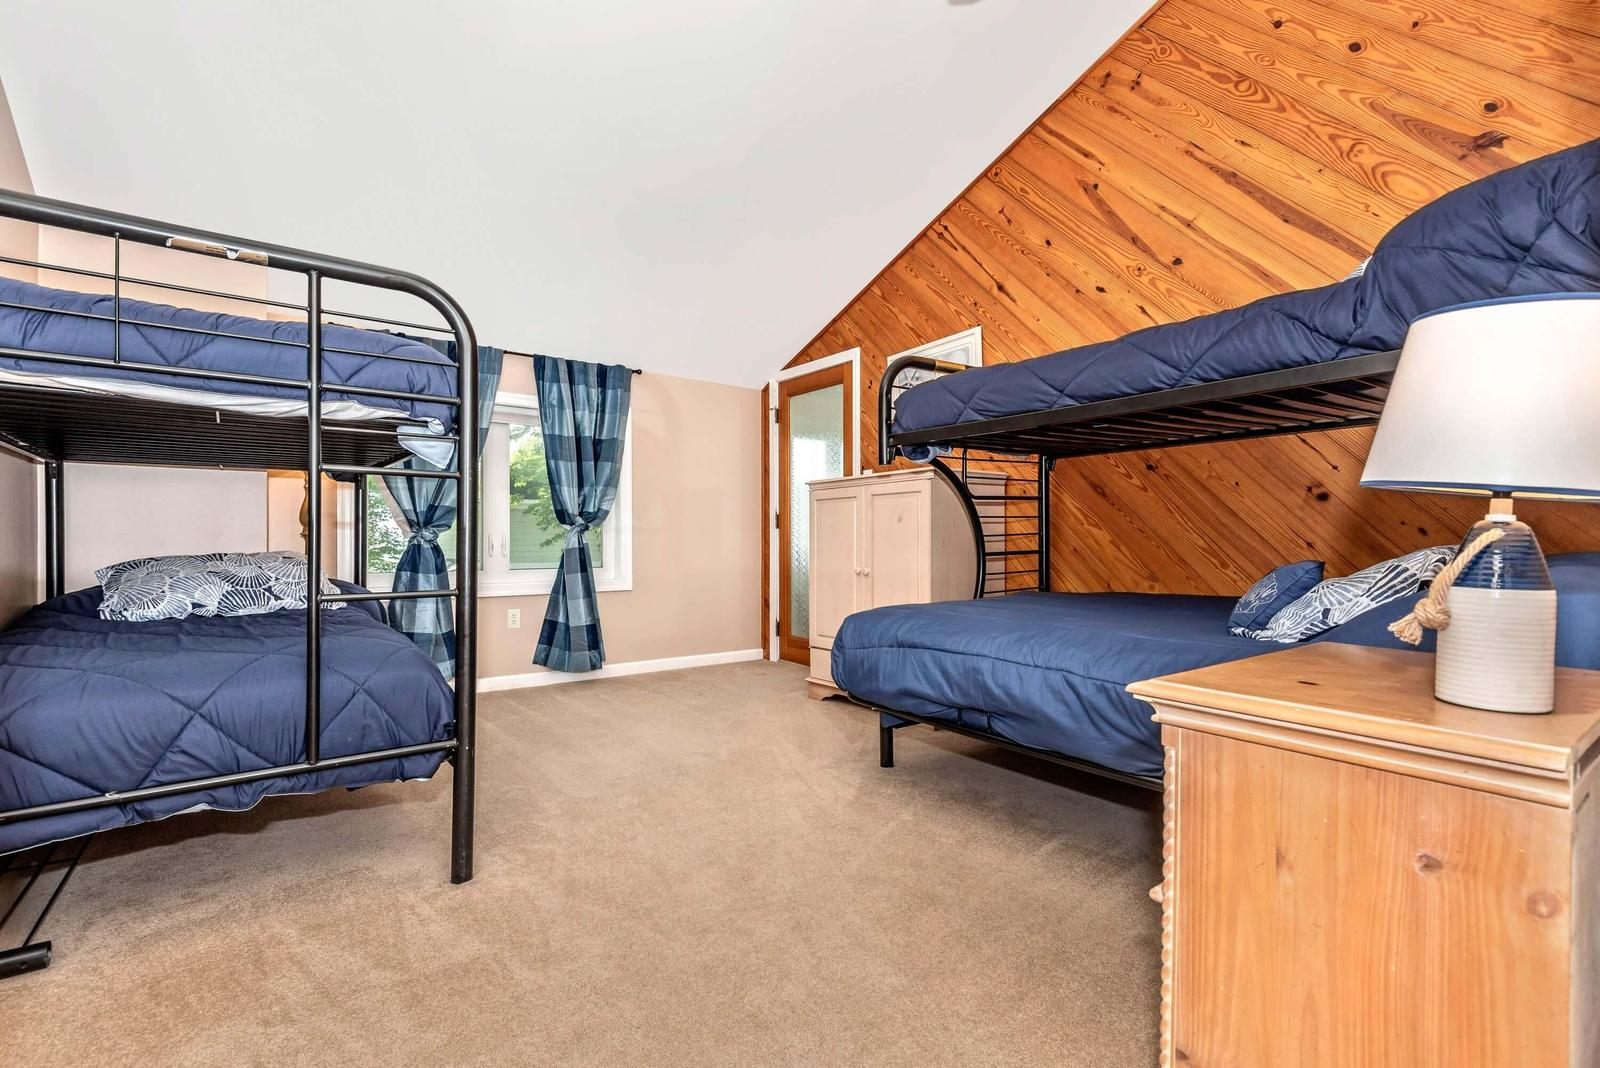 Large master bedroom with 2 bunk beds and bathroom.